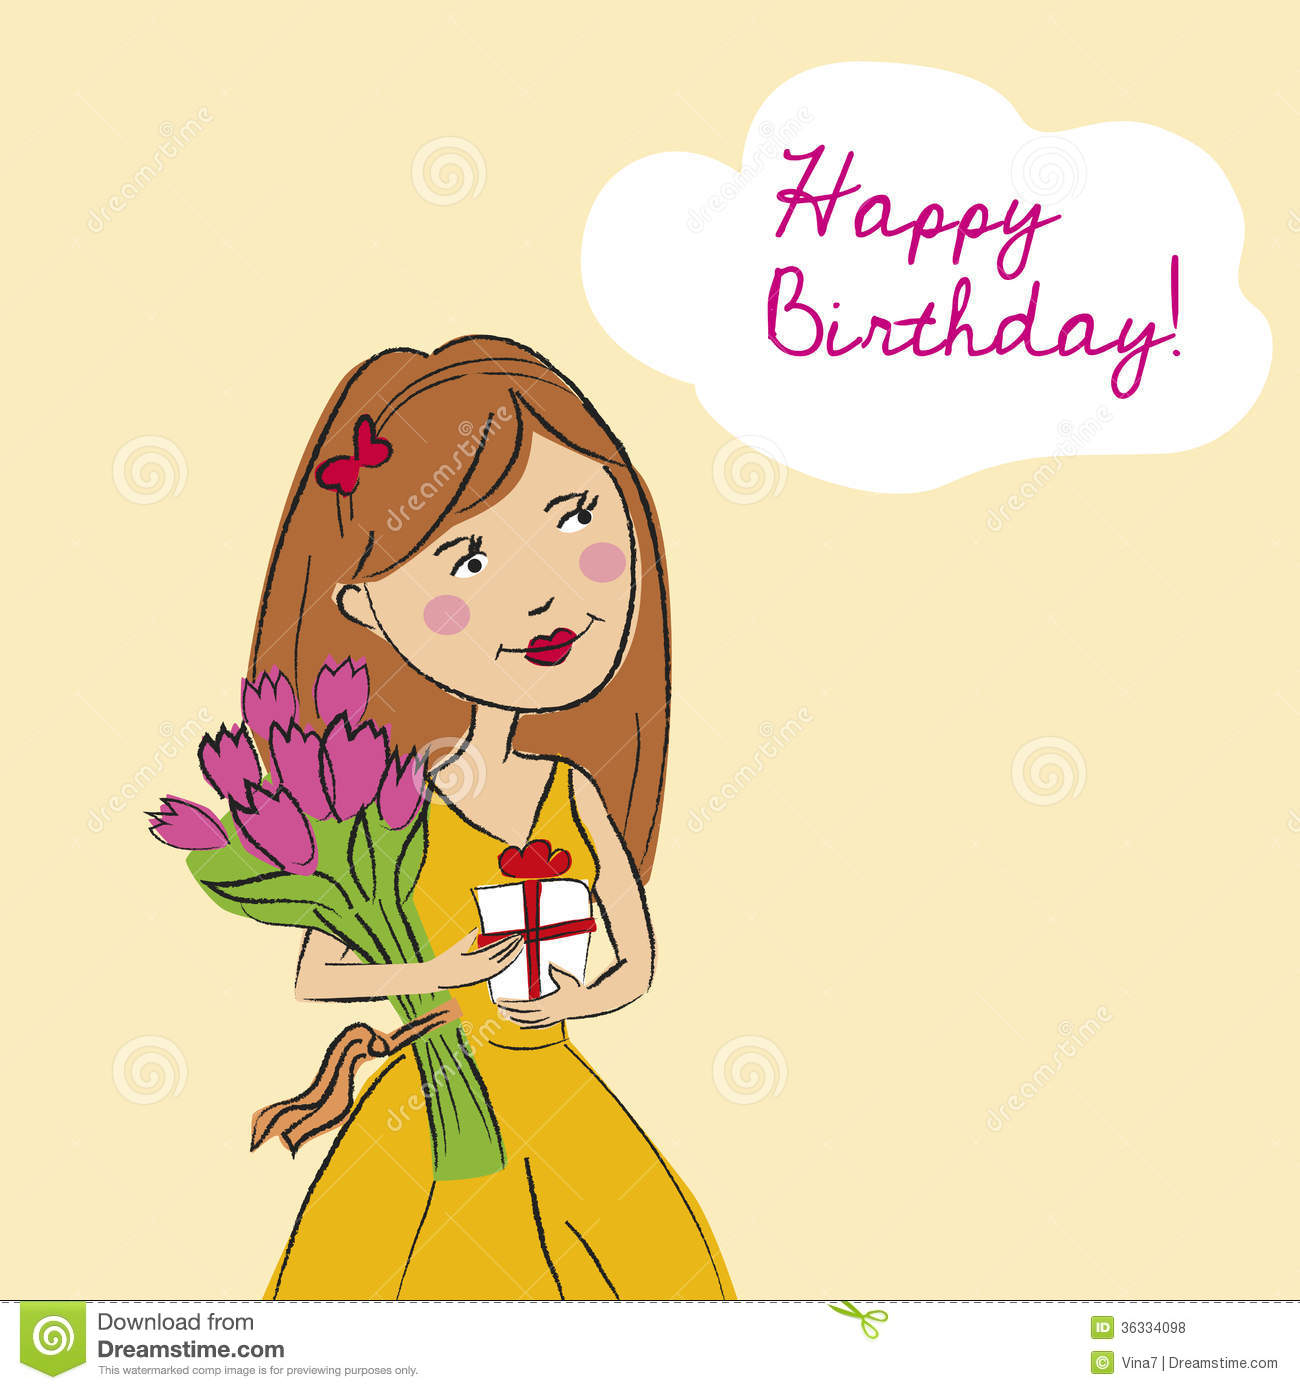 Happy Birthday Card Royalty Free Stock Photos Image